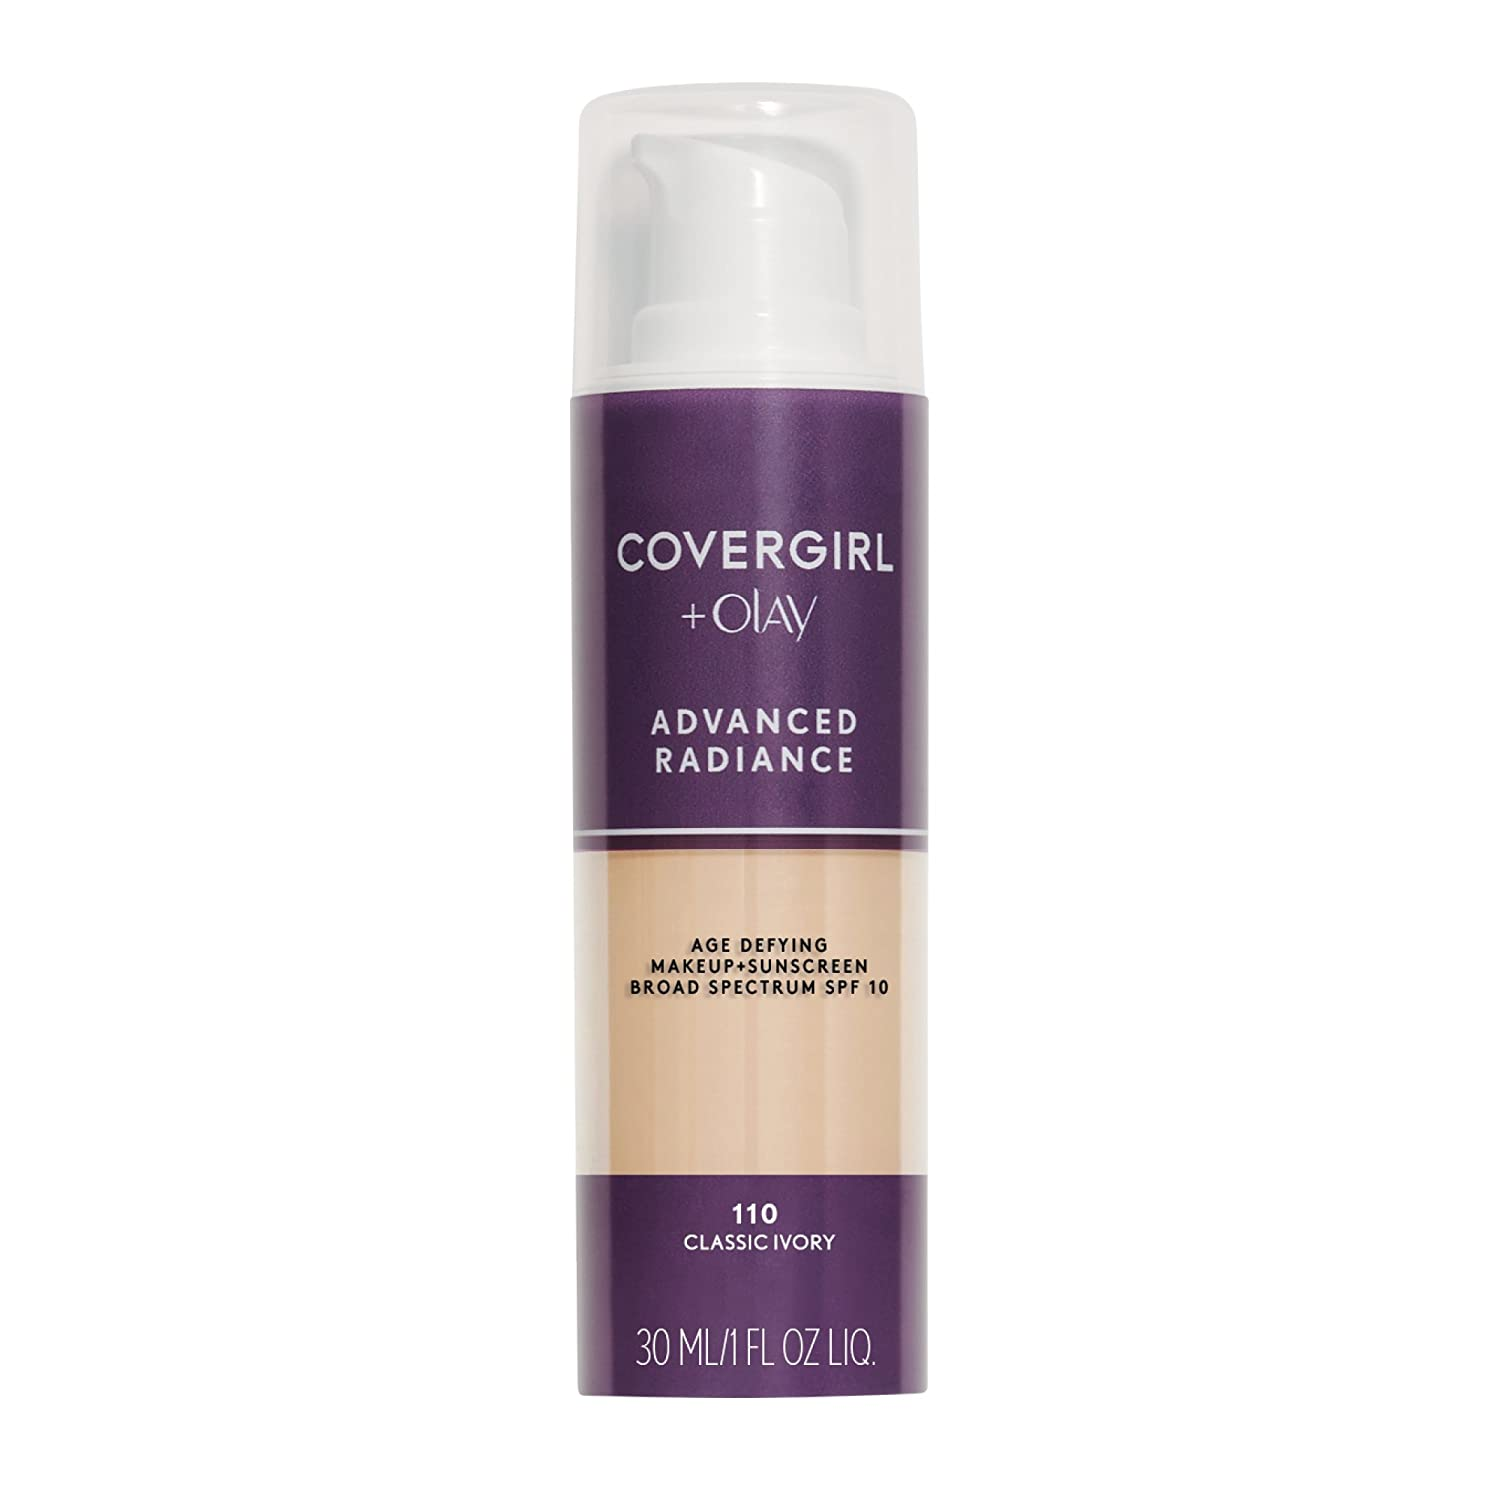 COVERGIRL - Advanced Radiance Age Defying Foundation - Packaging May Vary Coty CGRMQ8143